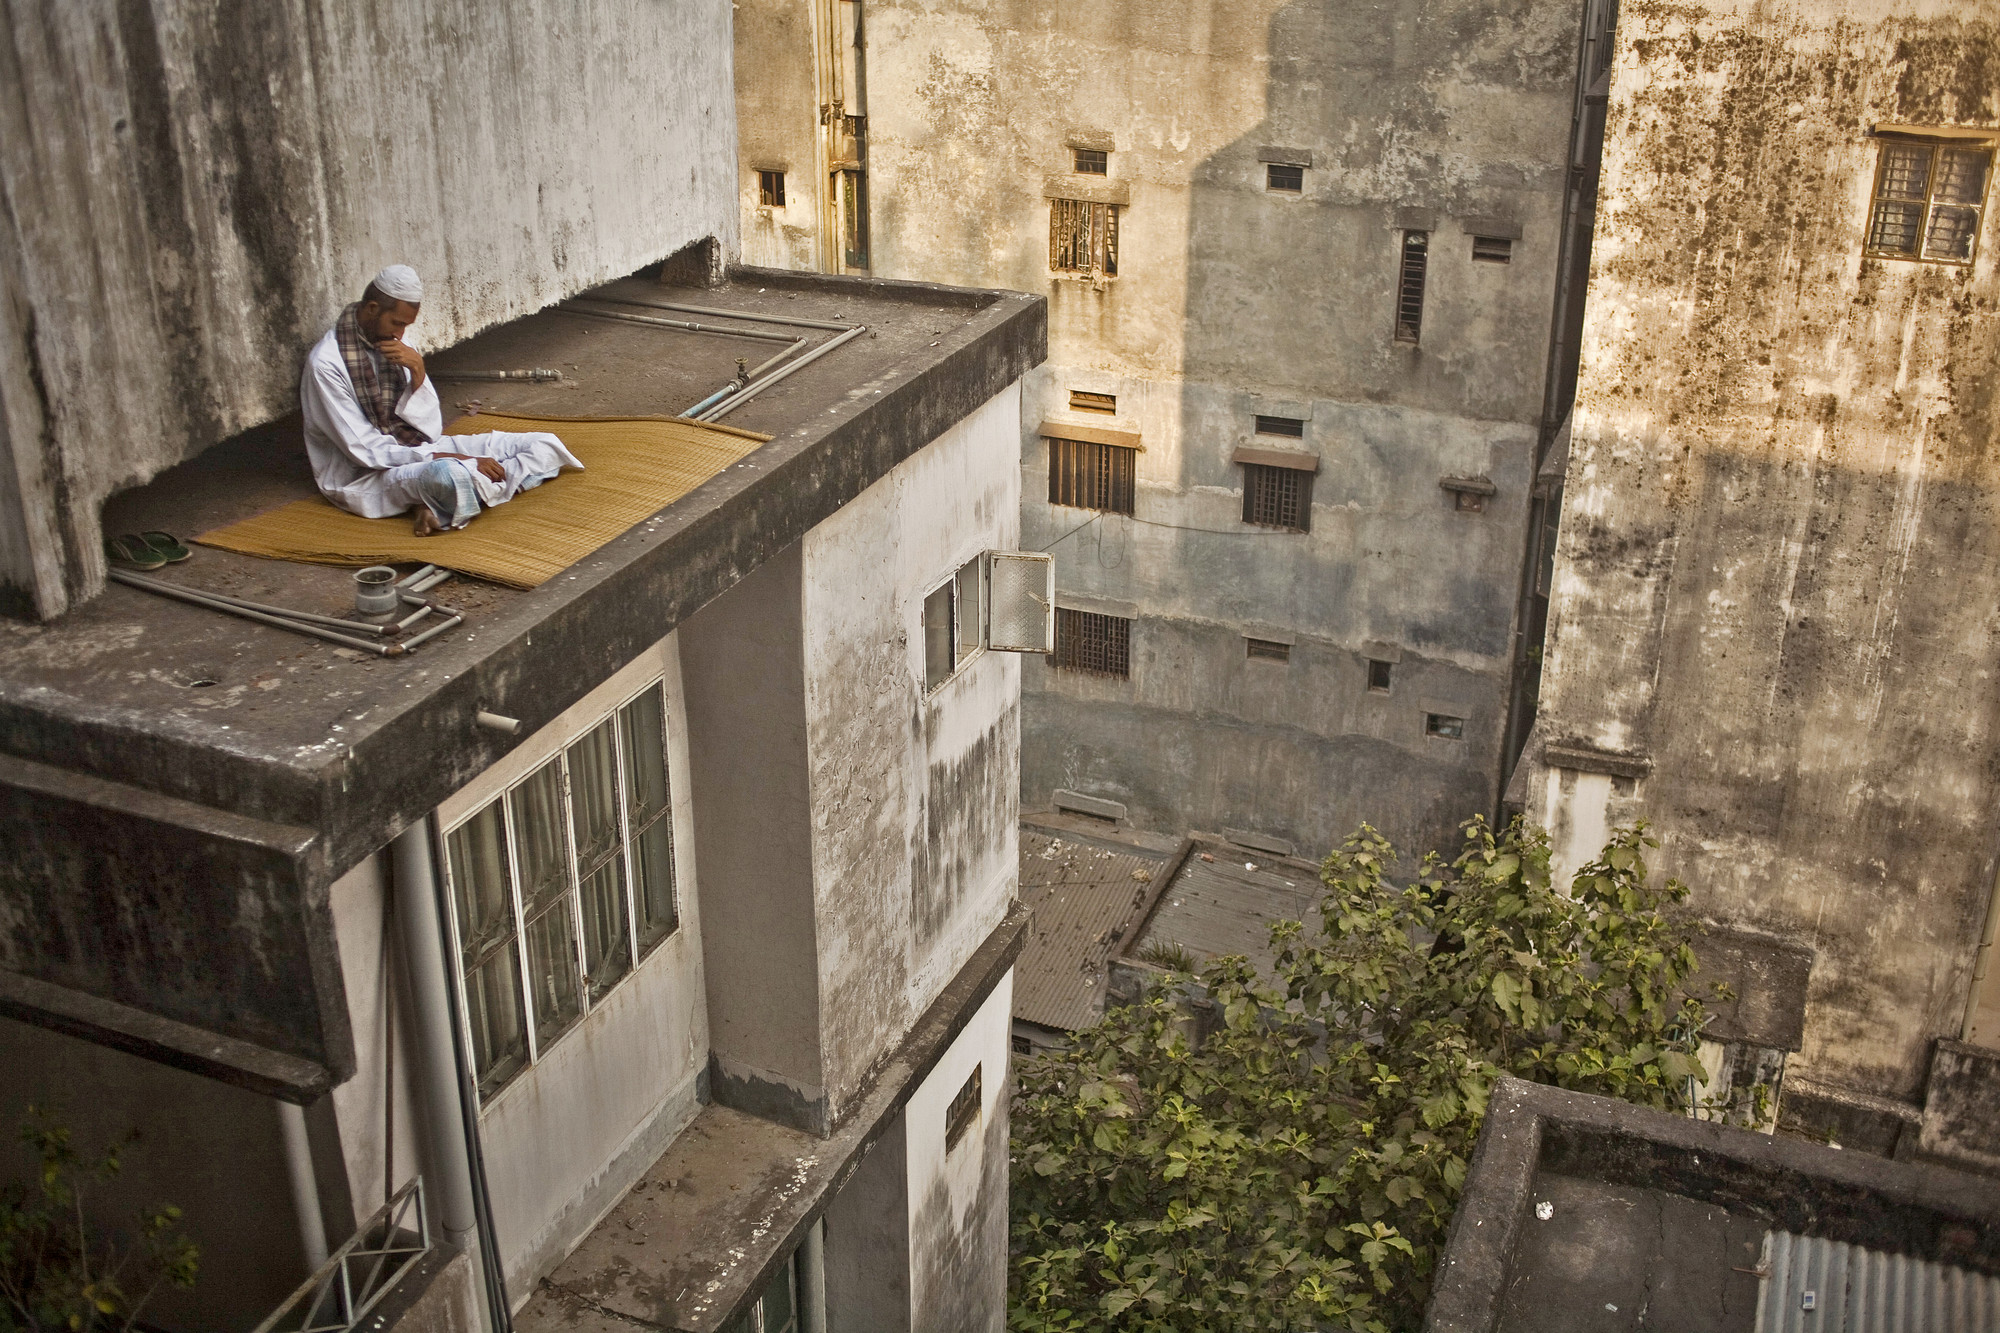 Getting lost on a roof. Image © Wahid Adnan